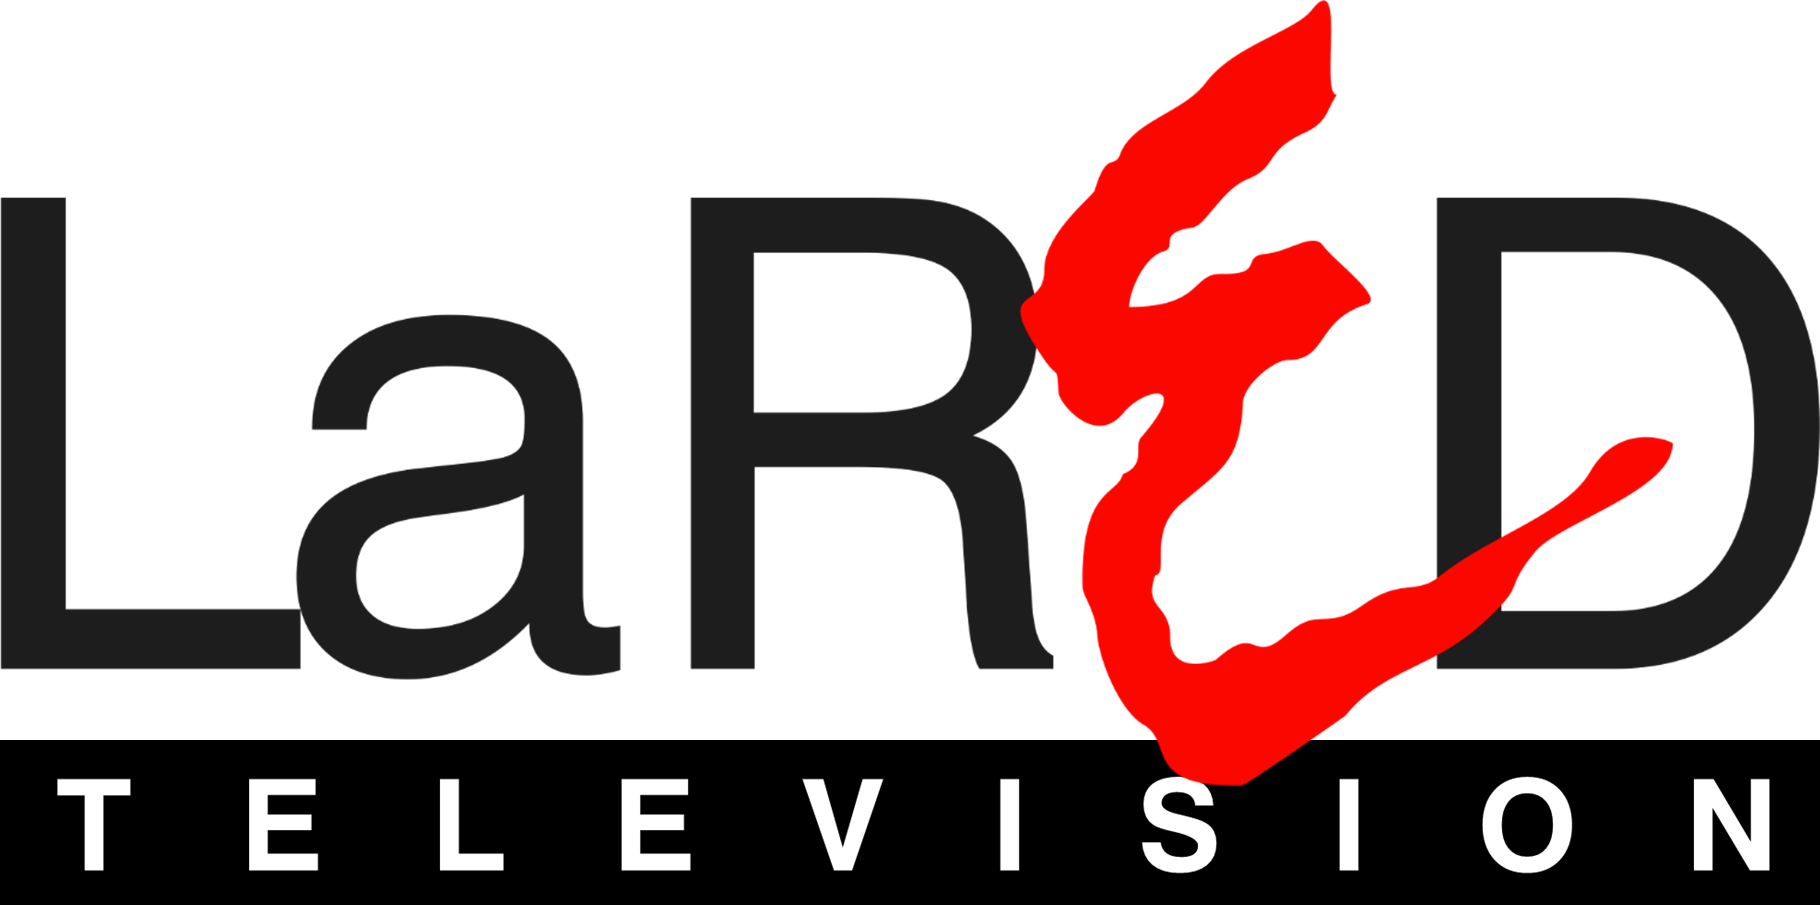 La Red (Chilean television channel)